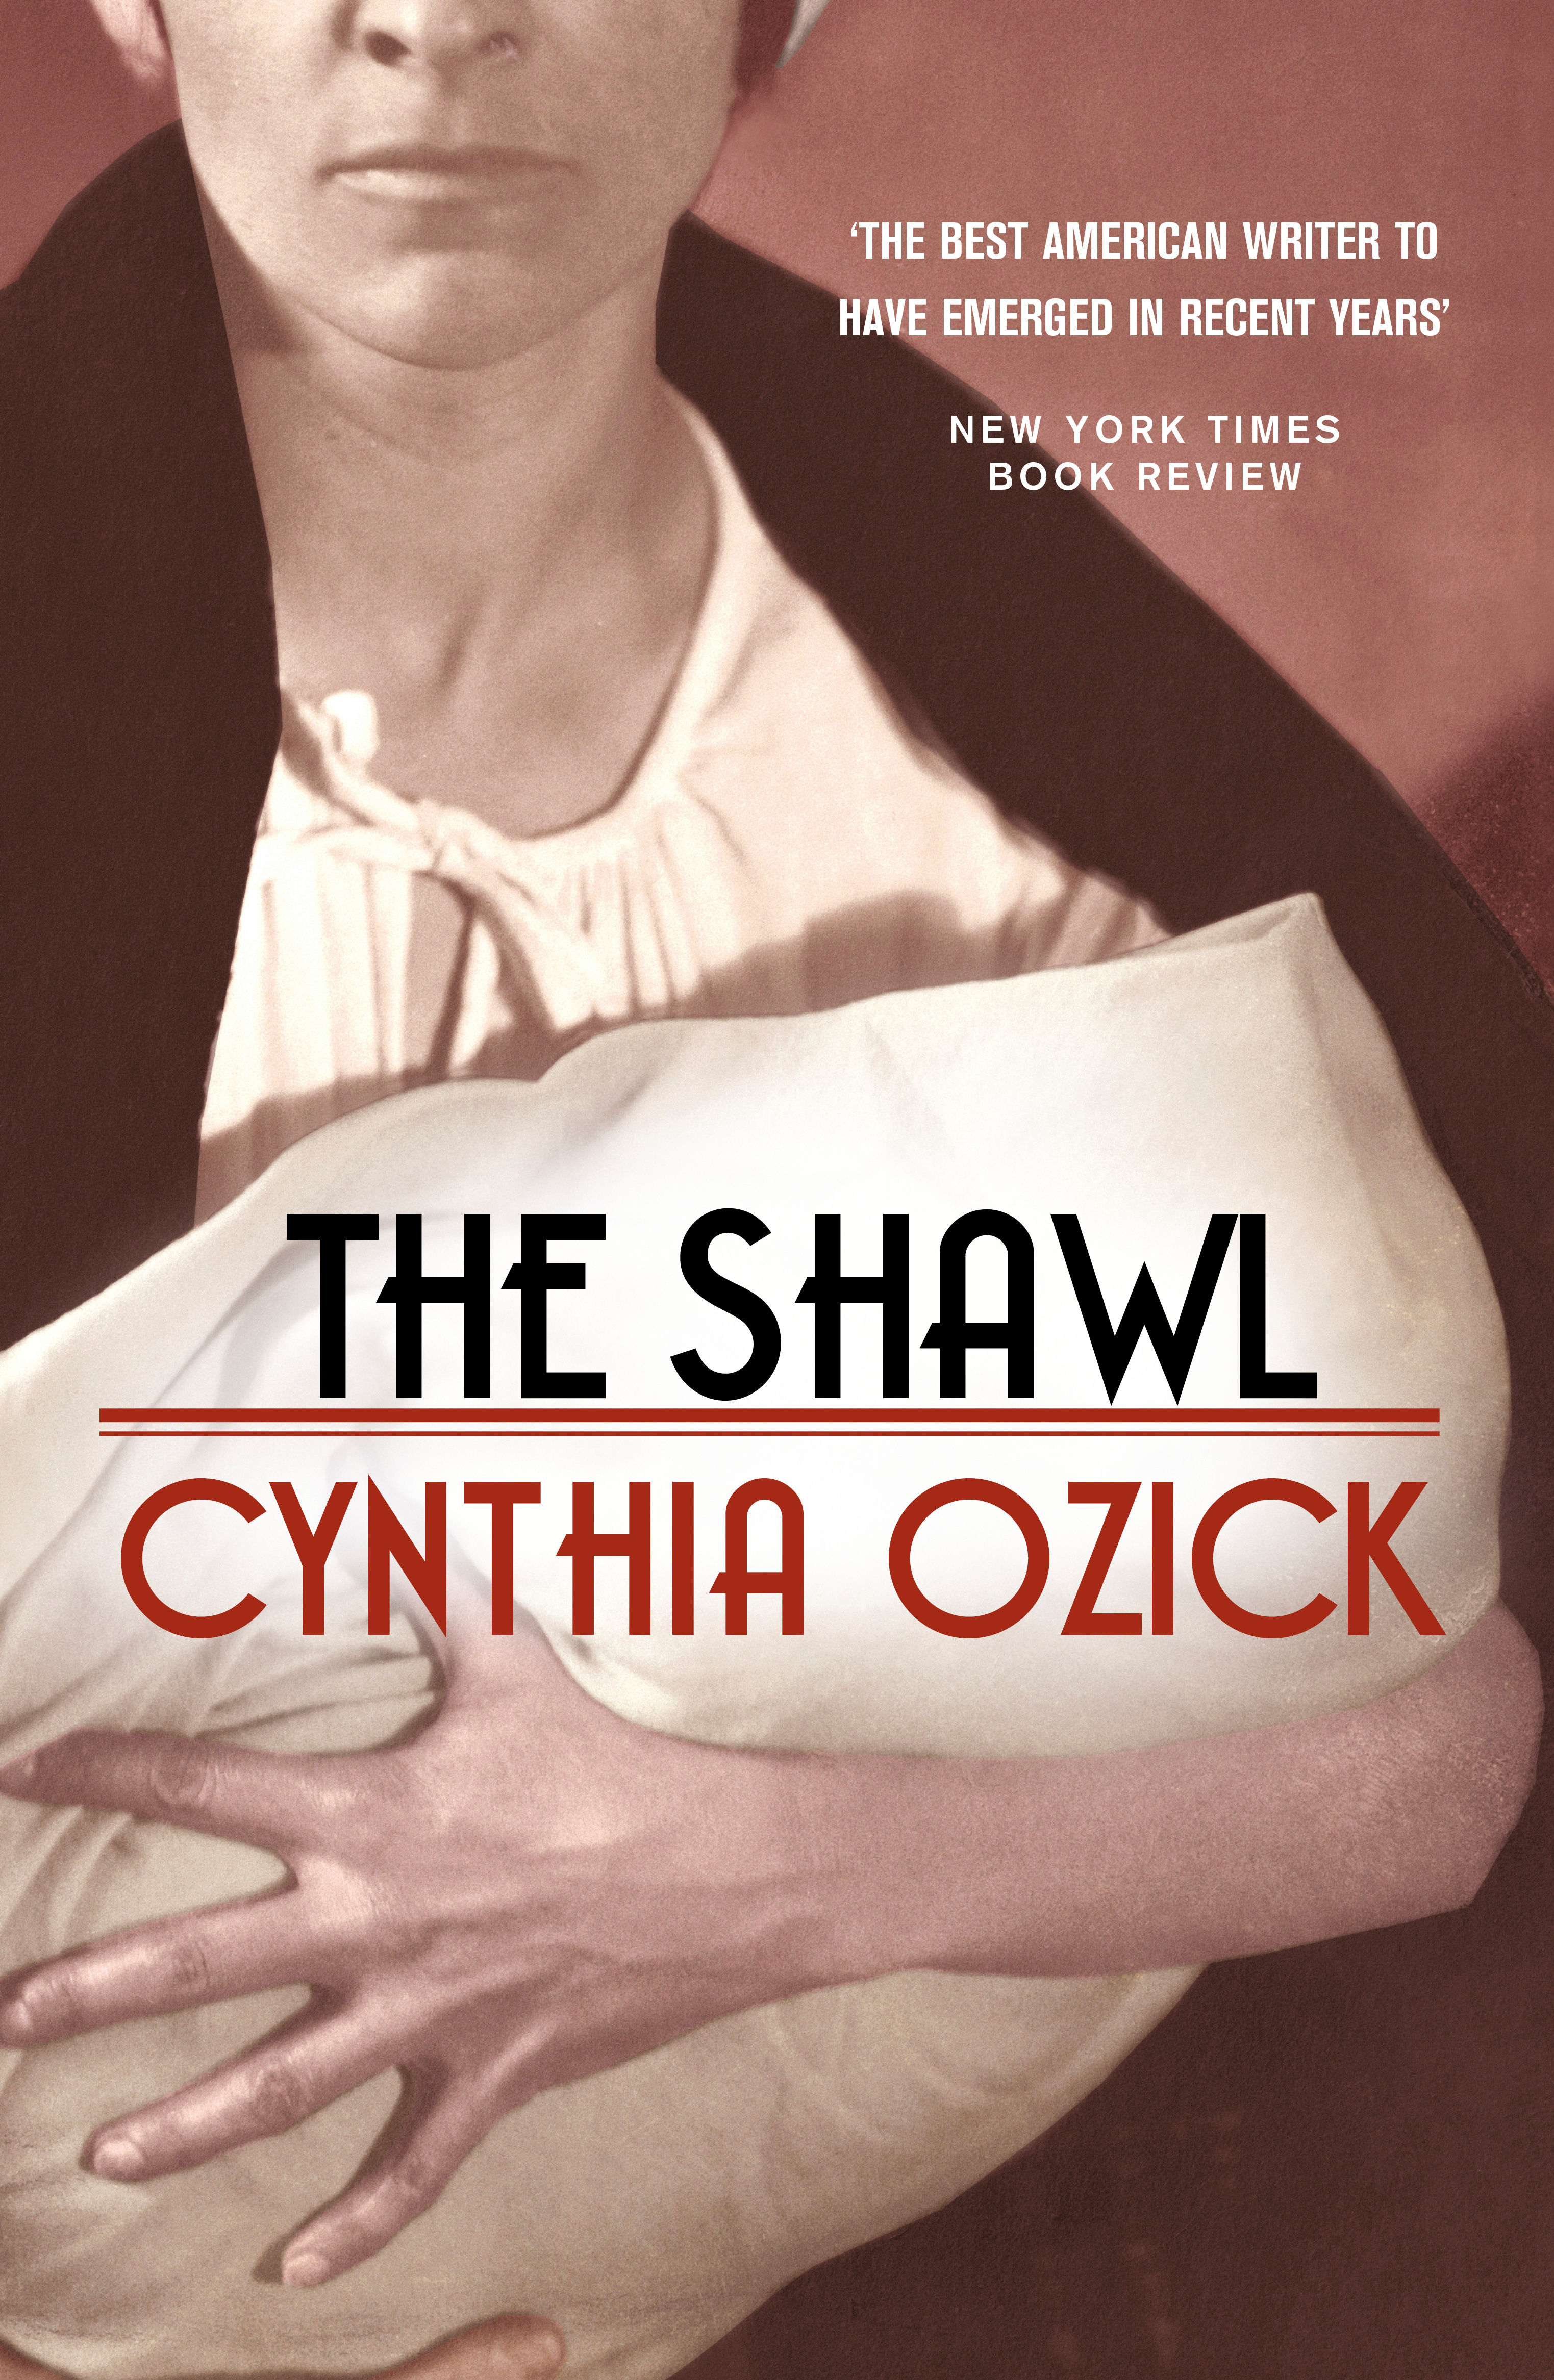 an analysis of the shawl by cynthia ozick The shawl by cynthia ozick goes beyond just a shawl or an infant playing with it the shawl is a fiber that holds them all together, happy to a.